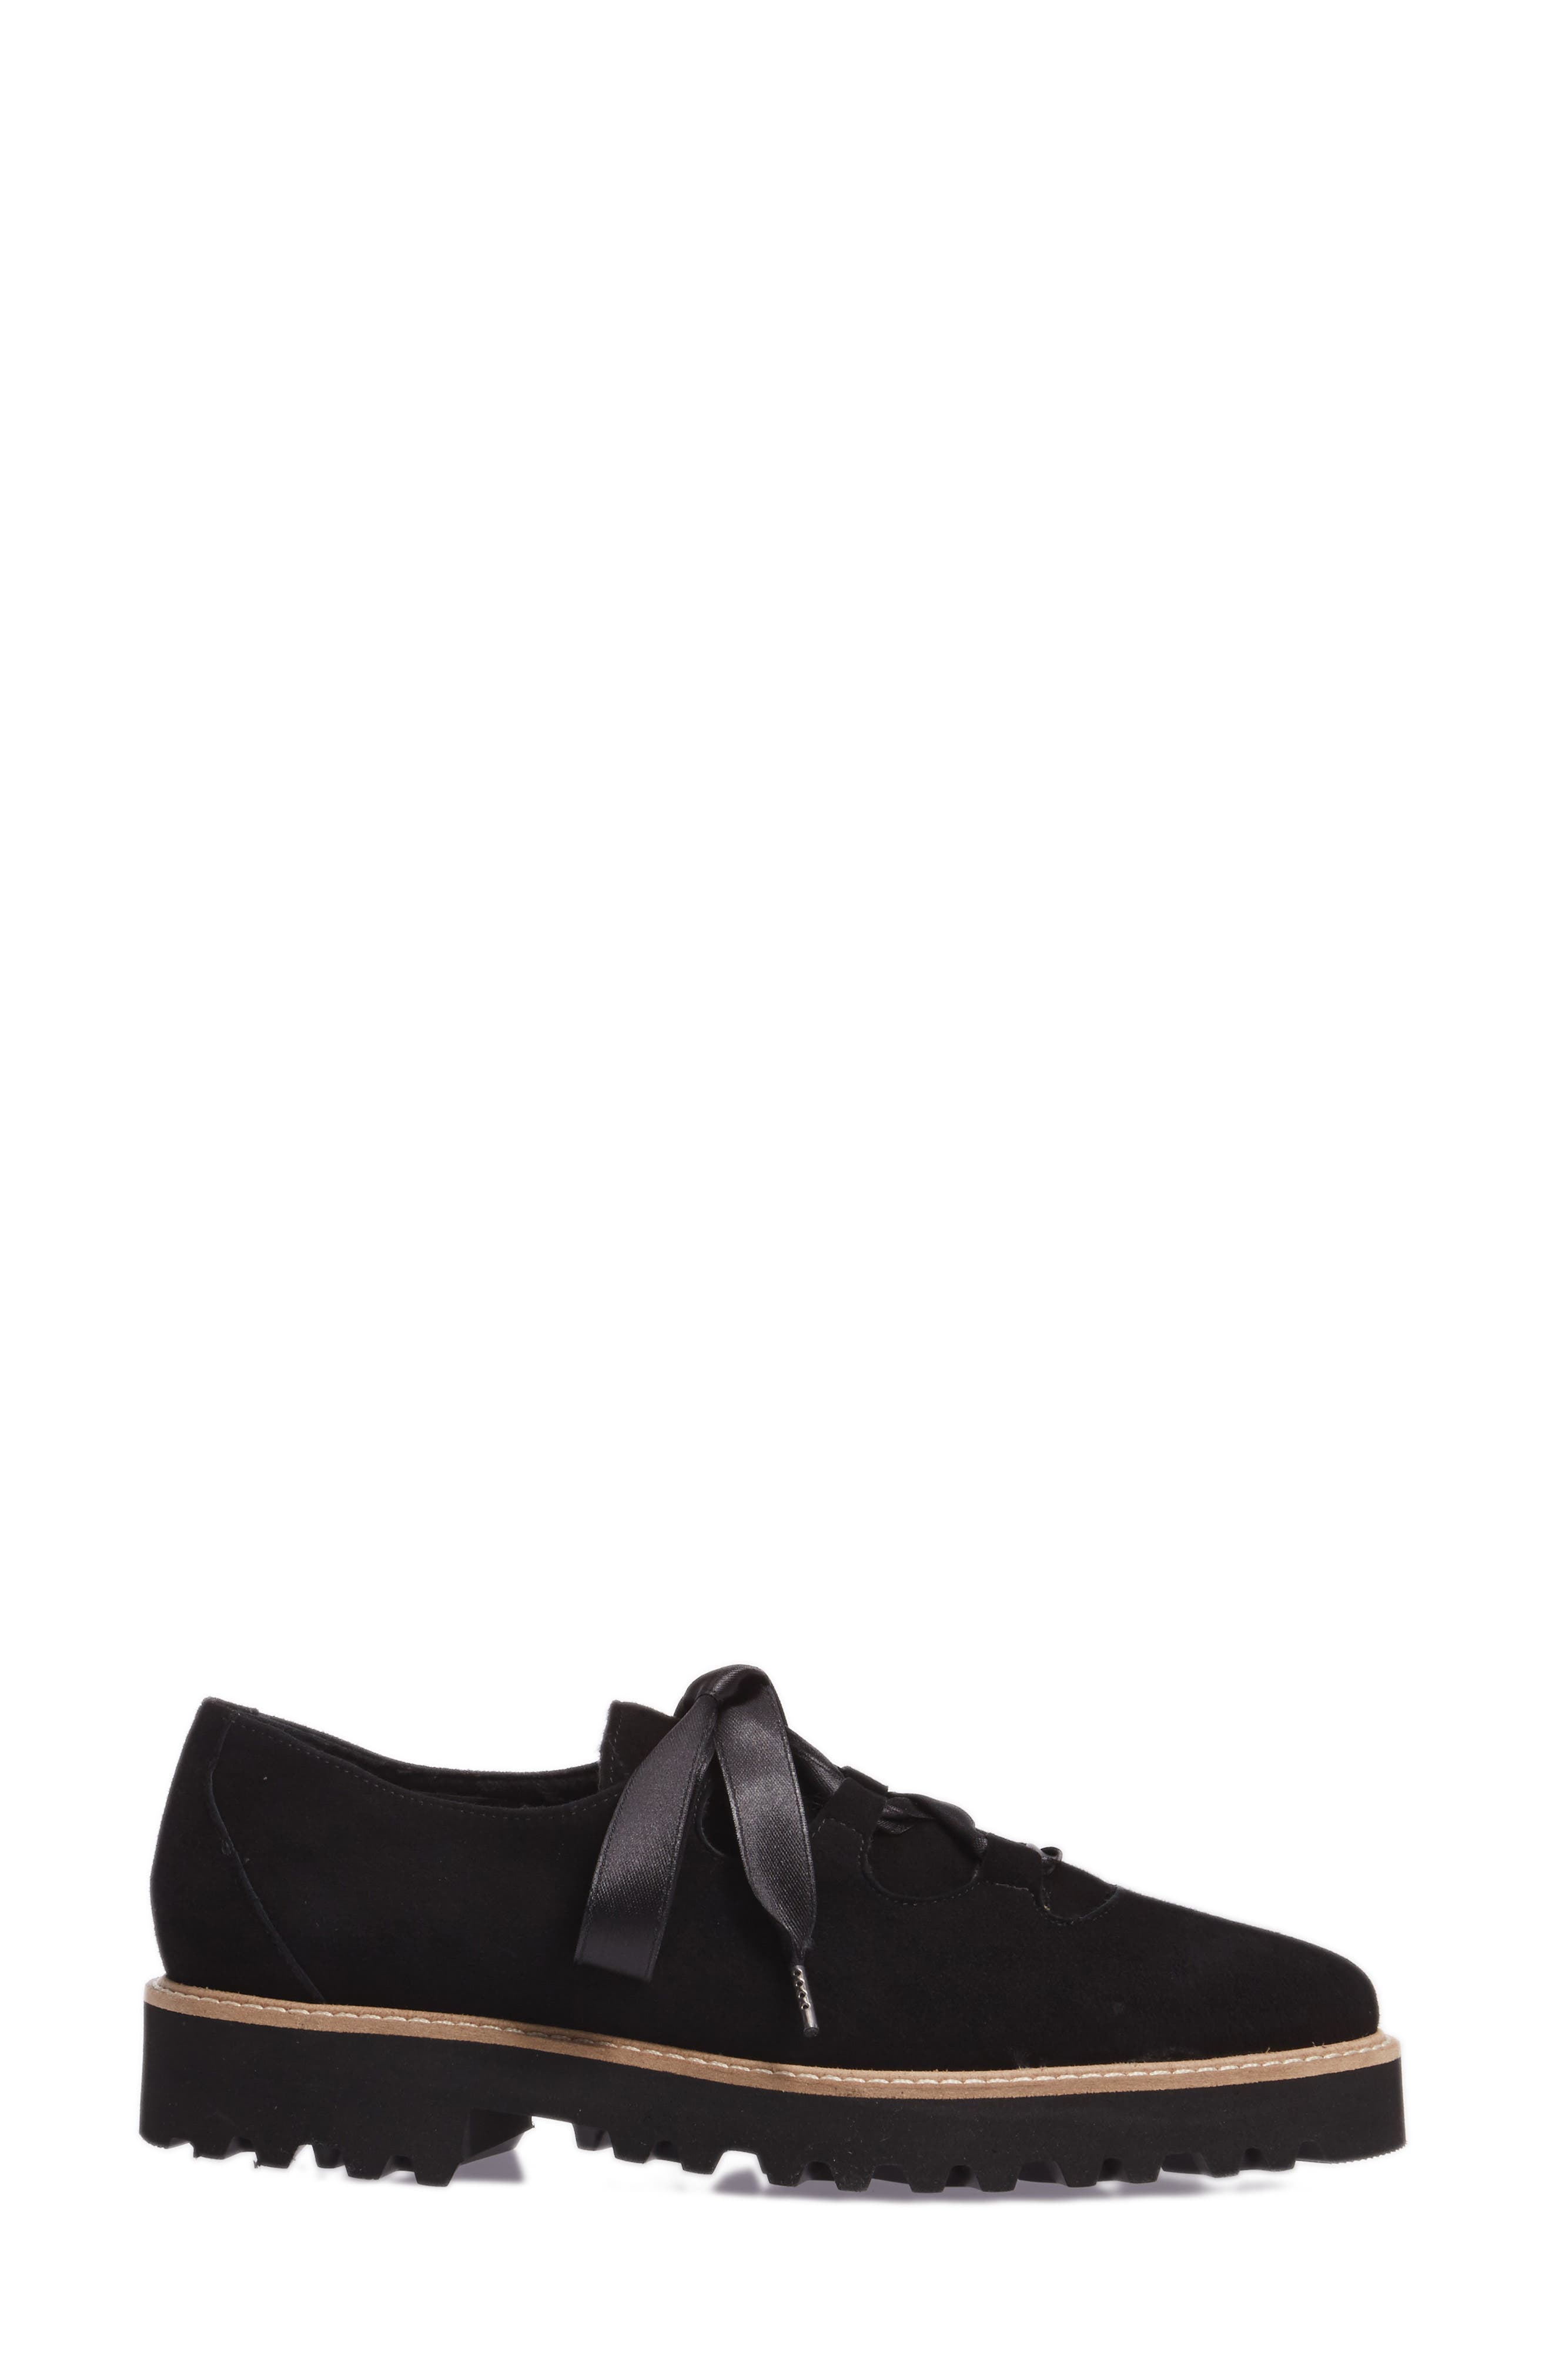 Daisy Water Resistant Oxford,                             Alternate thumbnail 3, color,                             ONYX SUEDE